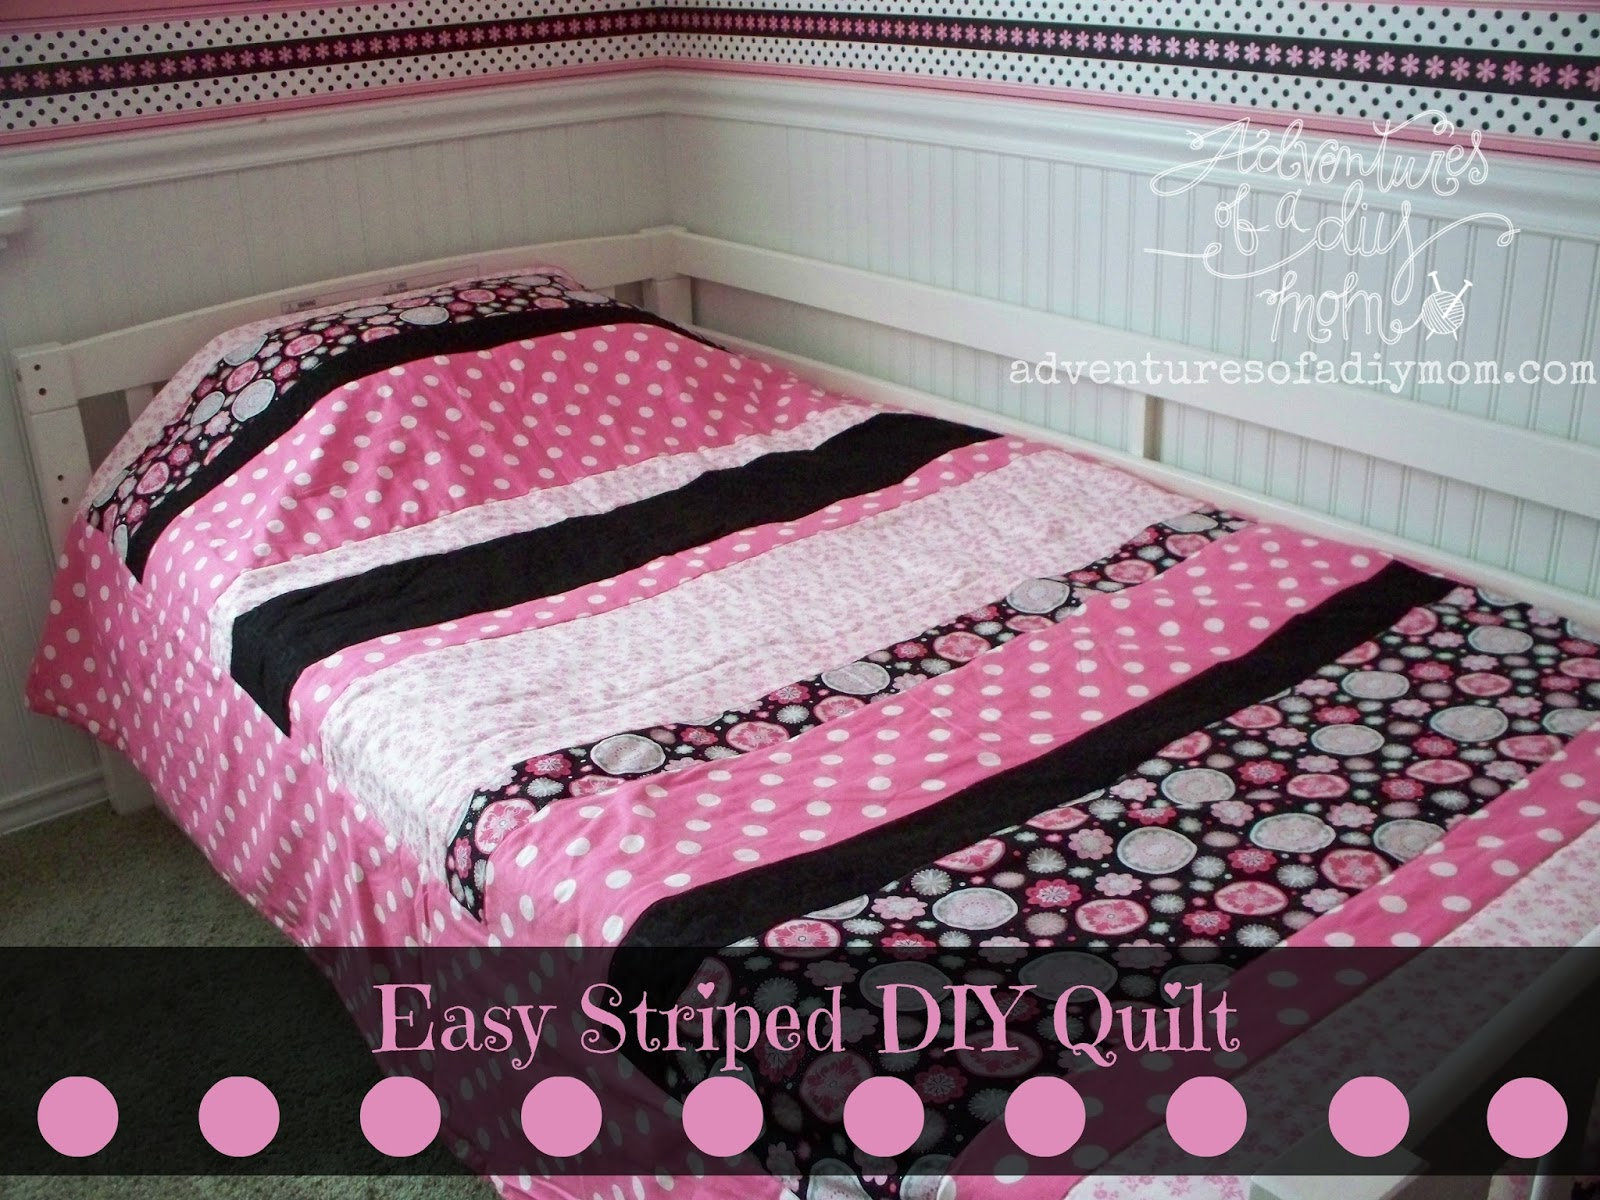 How To Make A Quick And Easy Striped Quilt Adventures Of